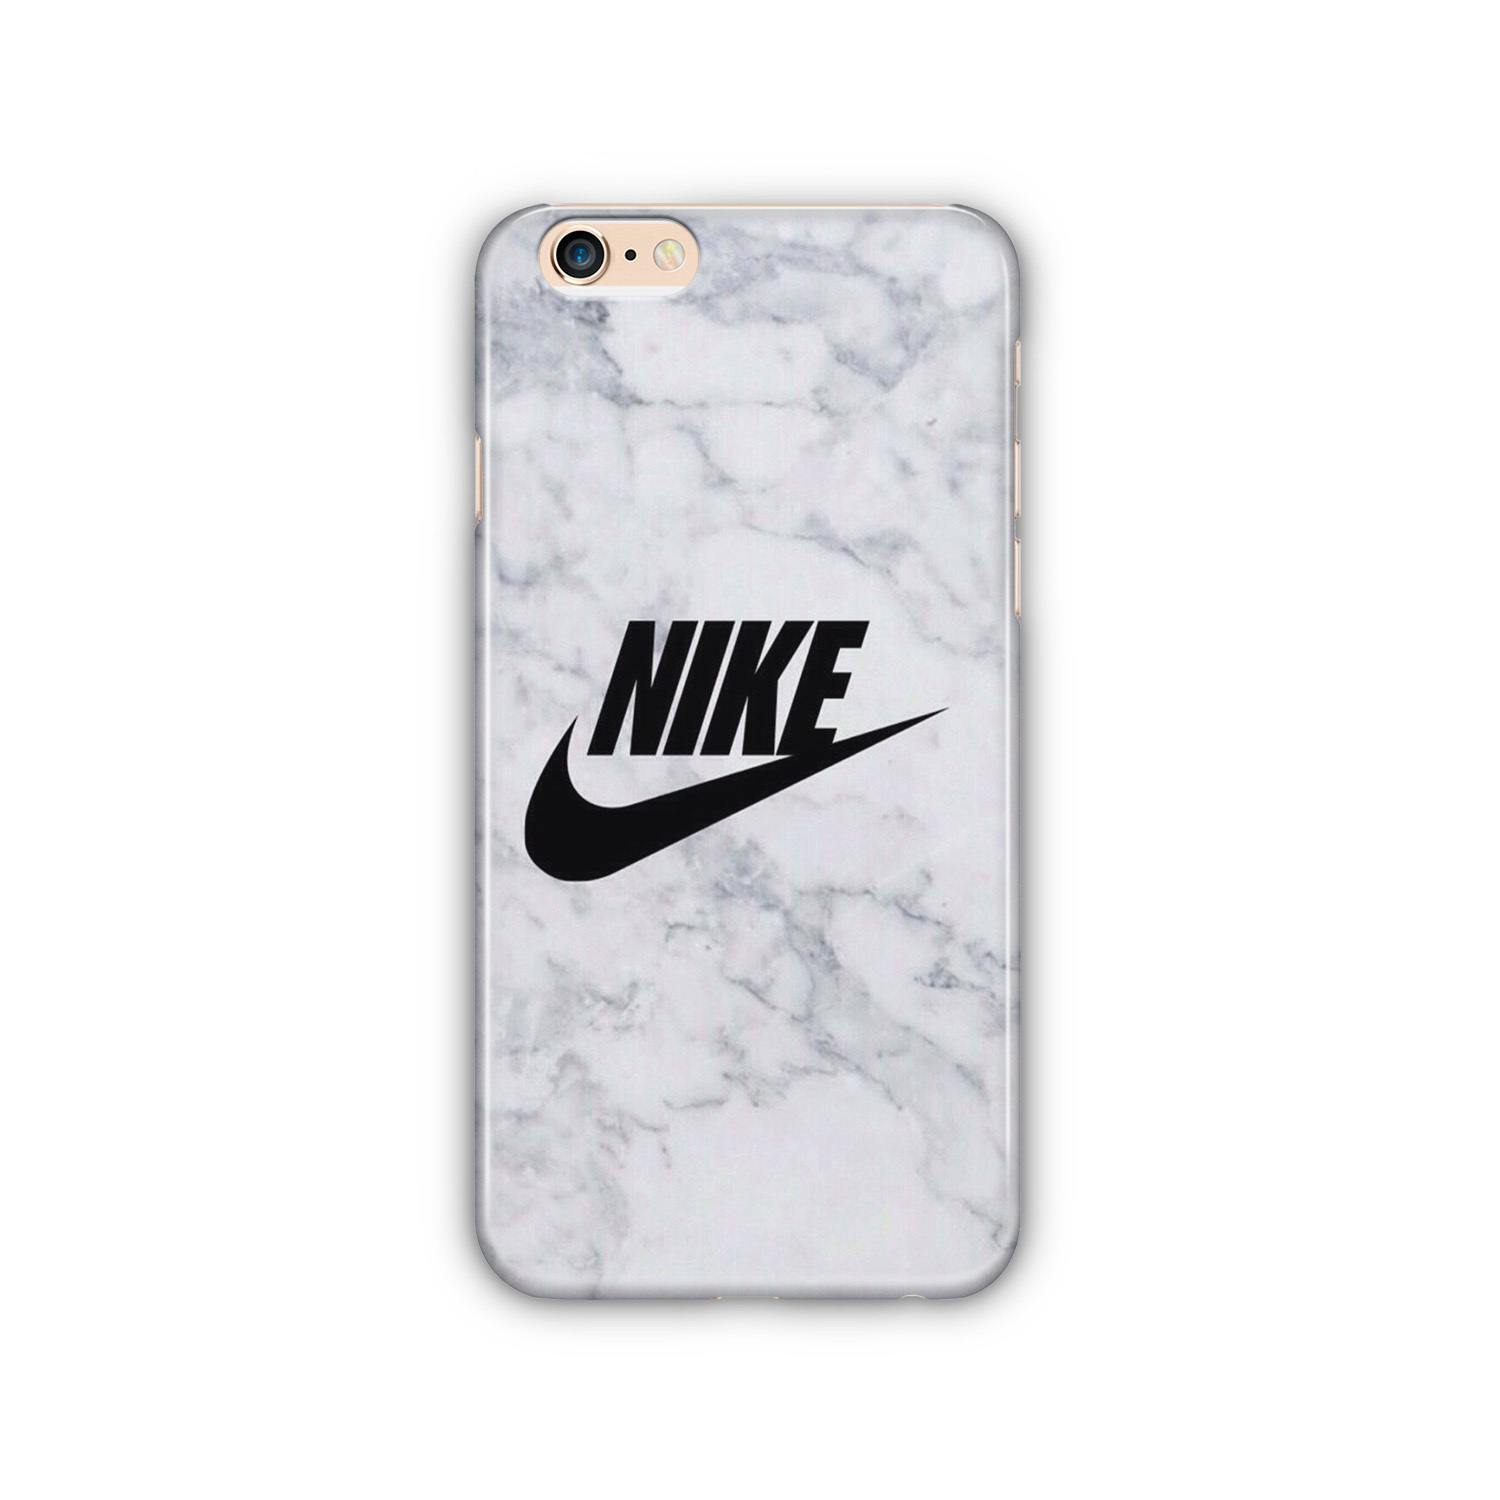 cheap for discount 11f63 f6046 Nike Marble Phone Cases Cover For iPhone 7 and 26 similar items